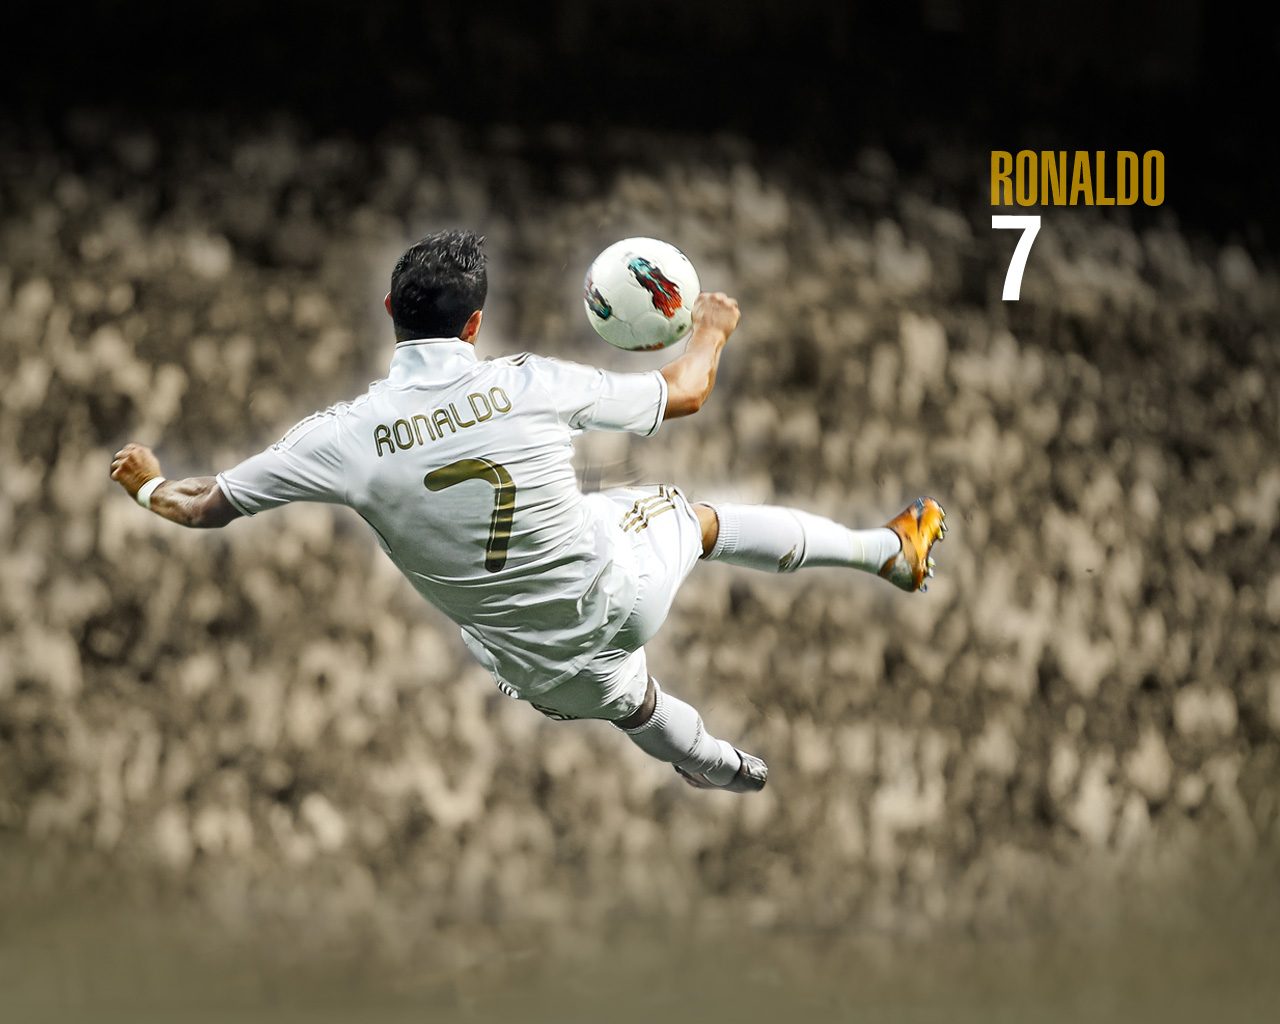 Cristiano Ronaldo HD Wallpapers 2012 2013 All About HD Wallpapers 1280x1024